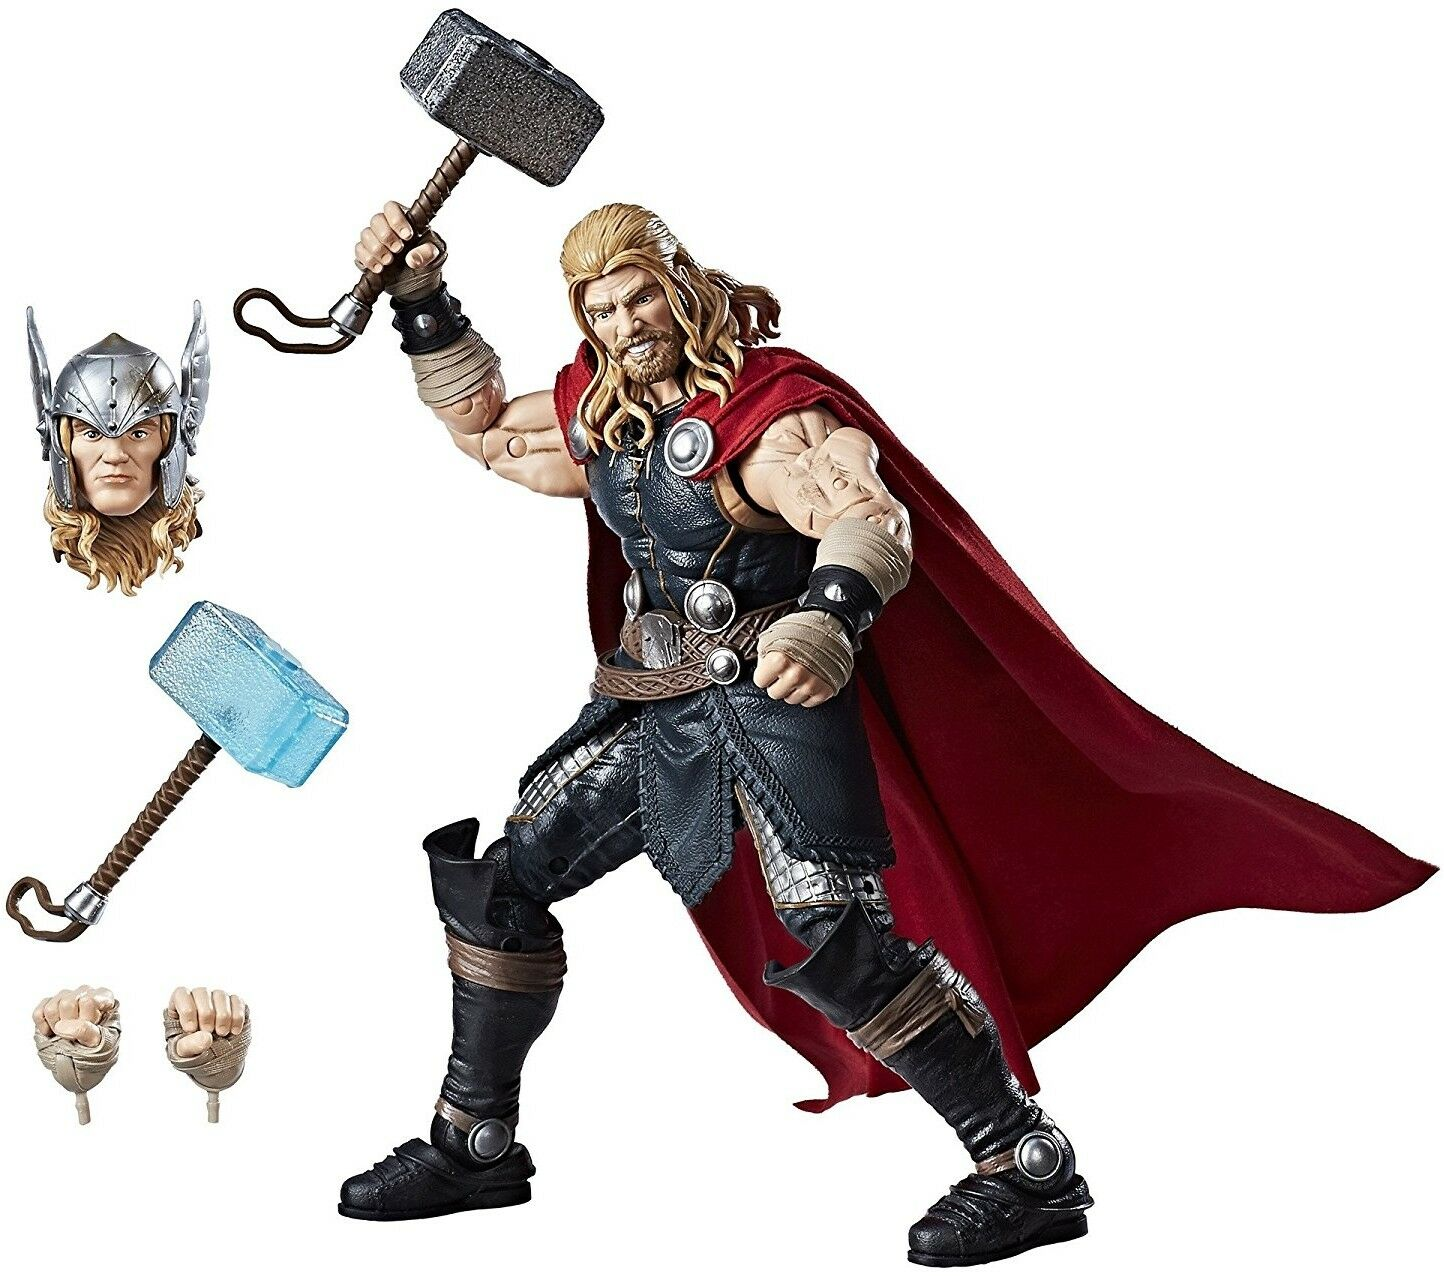 12 Inch Thor Action Figure Toys Kids Marvel Superhero Replica Collectible Gift